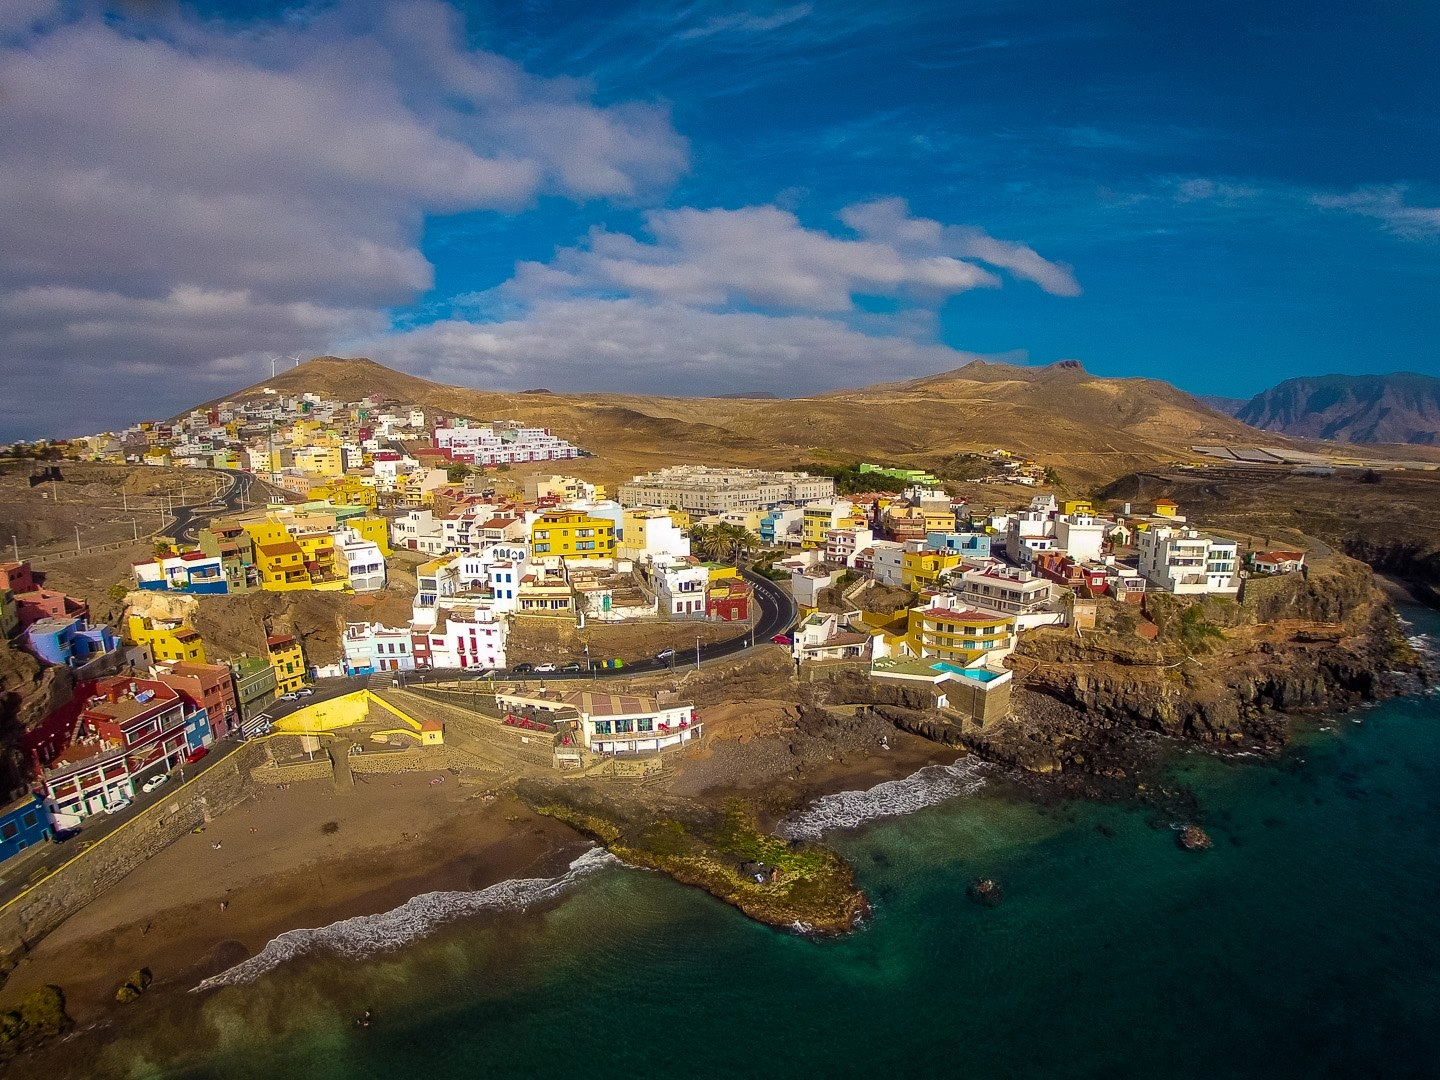 Sardina beach in north Gran Canaria has a Blue Flag award in 2018